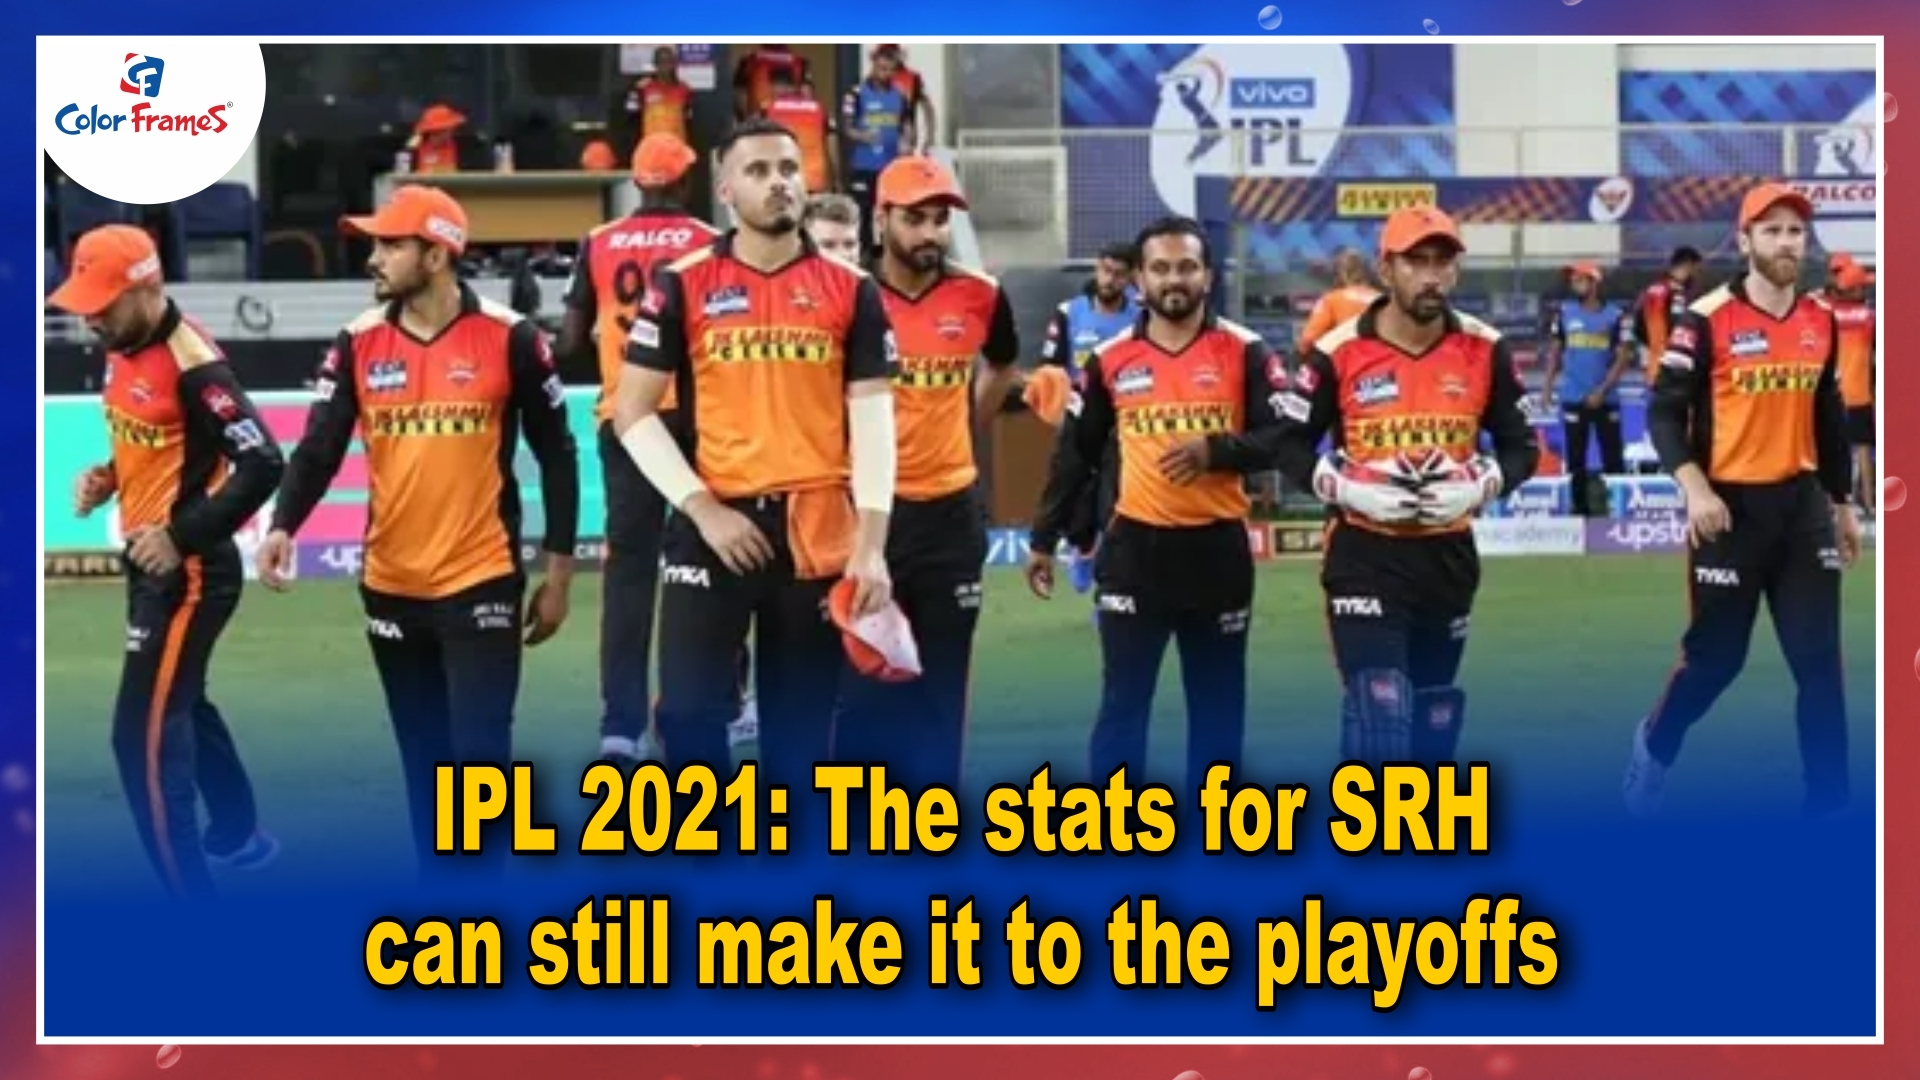 IPL 2021: The stats for SRH can still make it to the playoffs